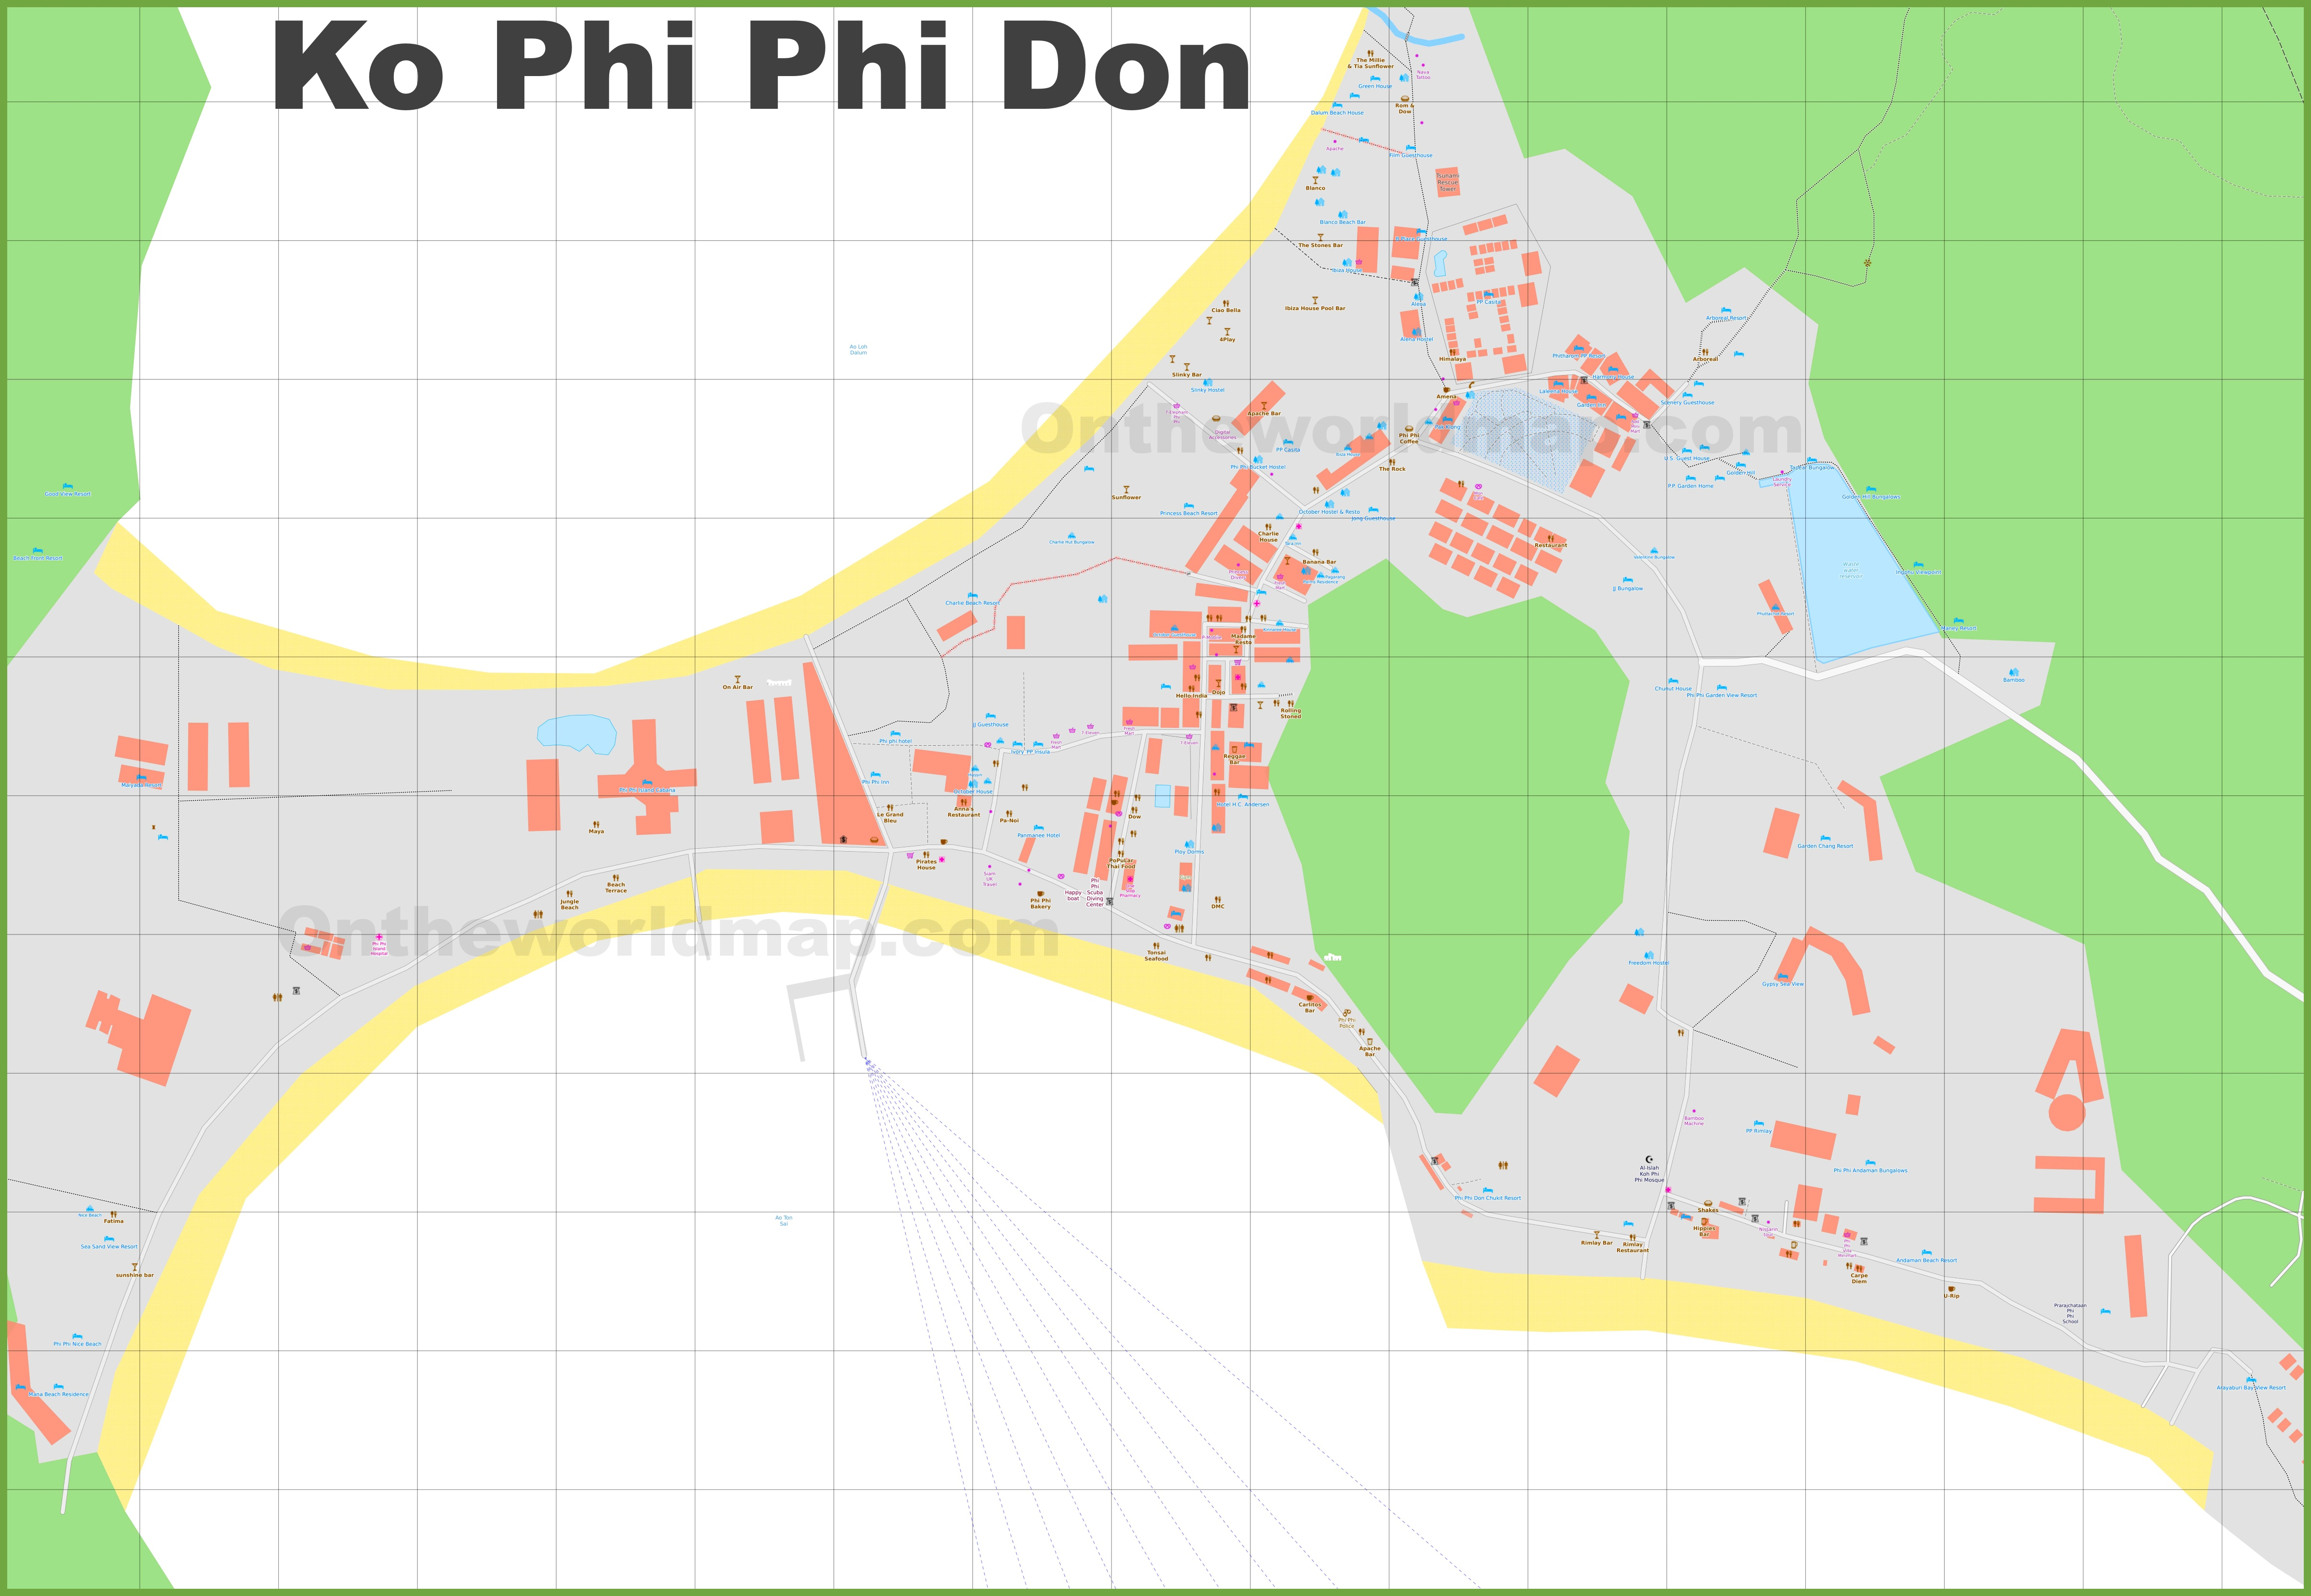 Phi Phi Don hotel map